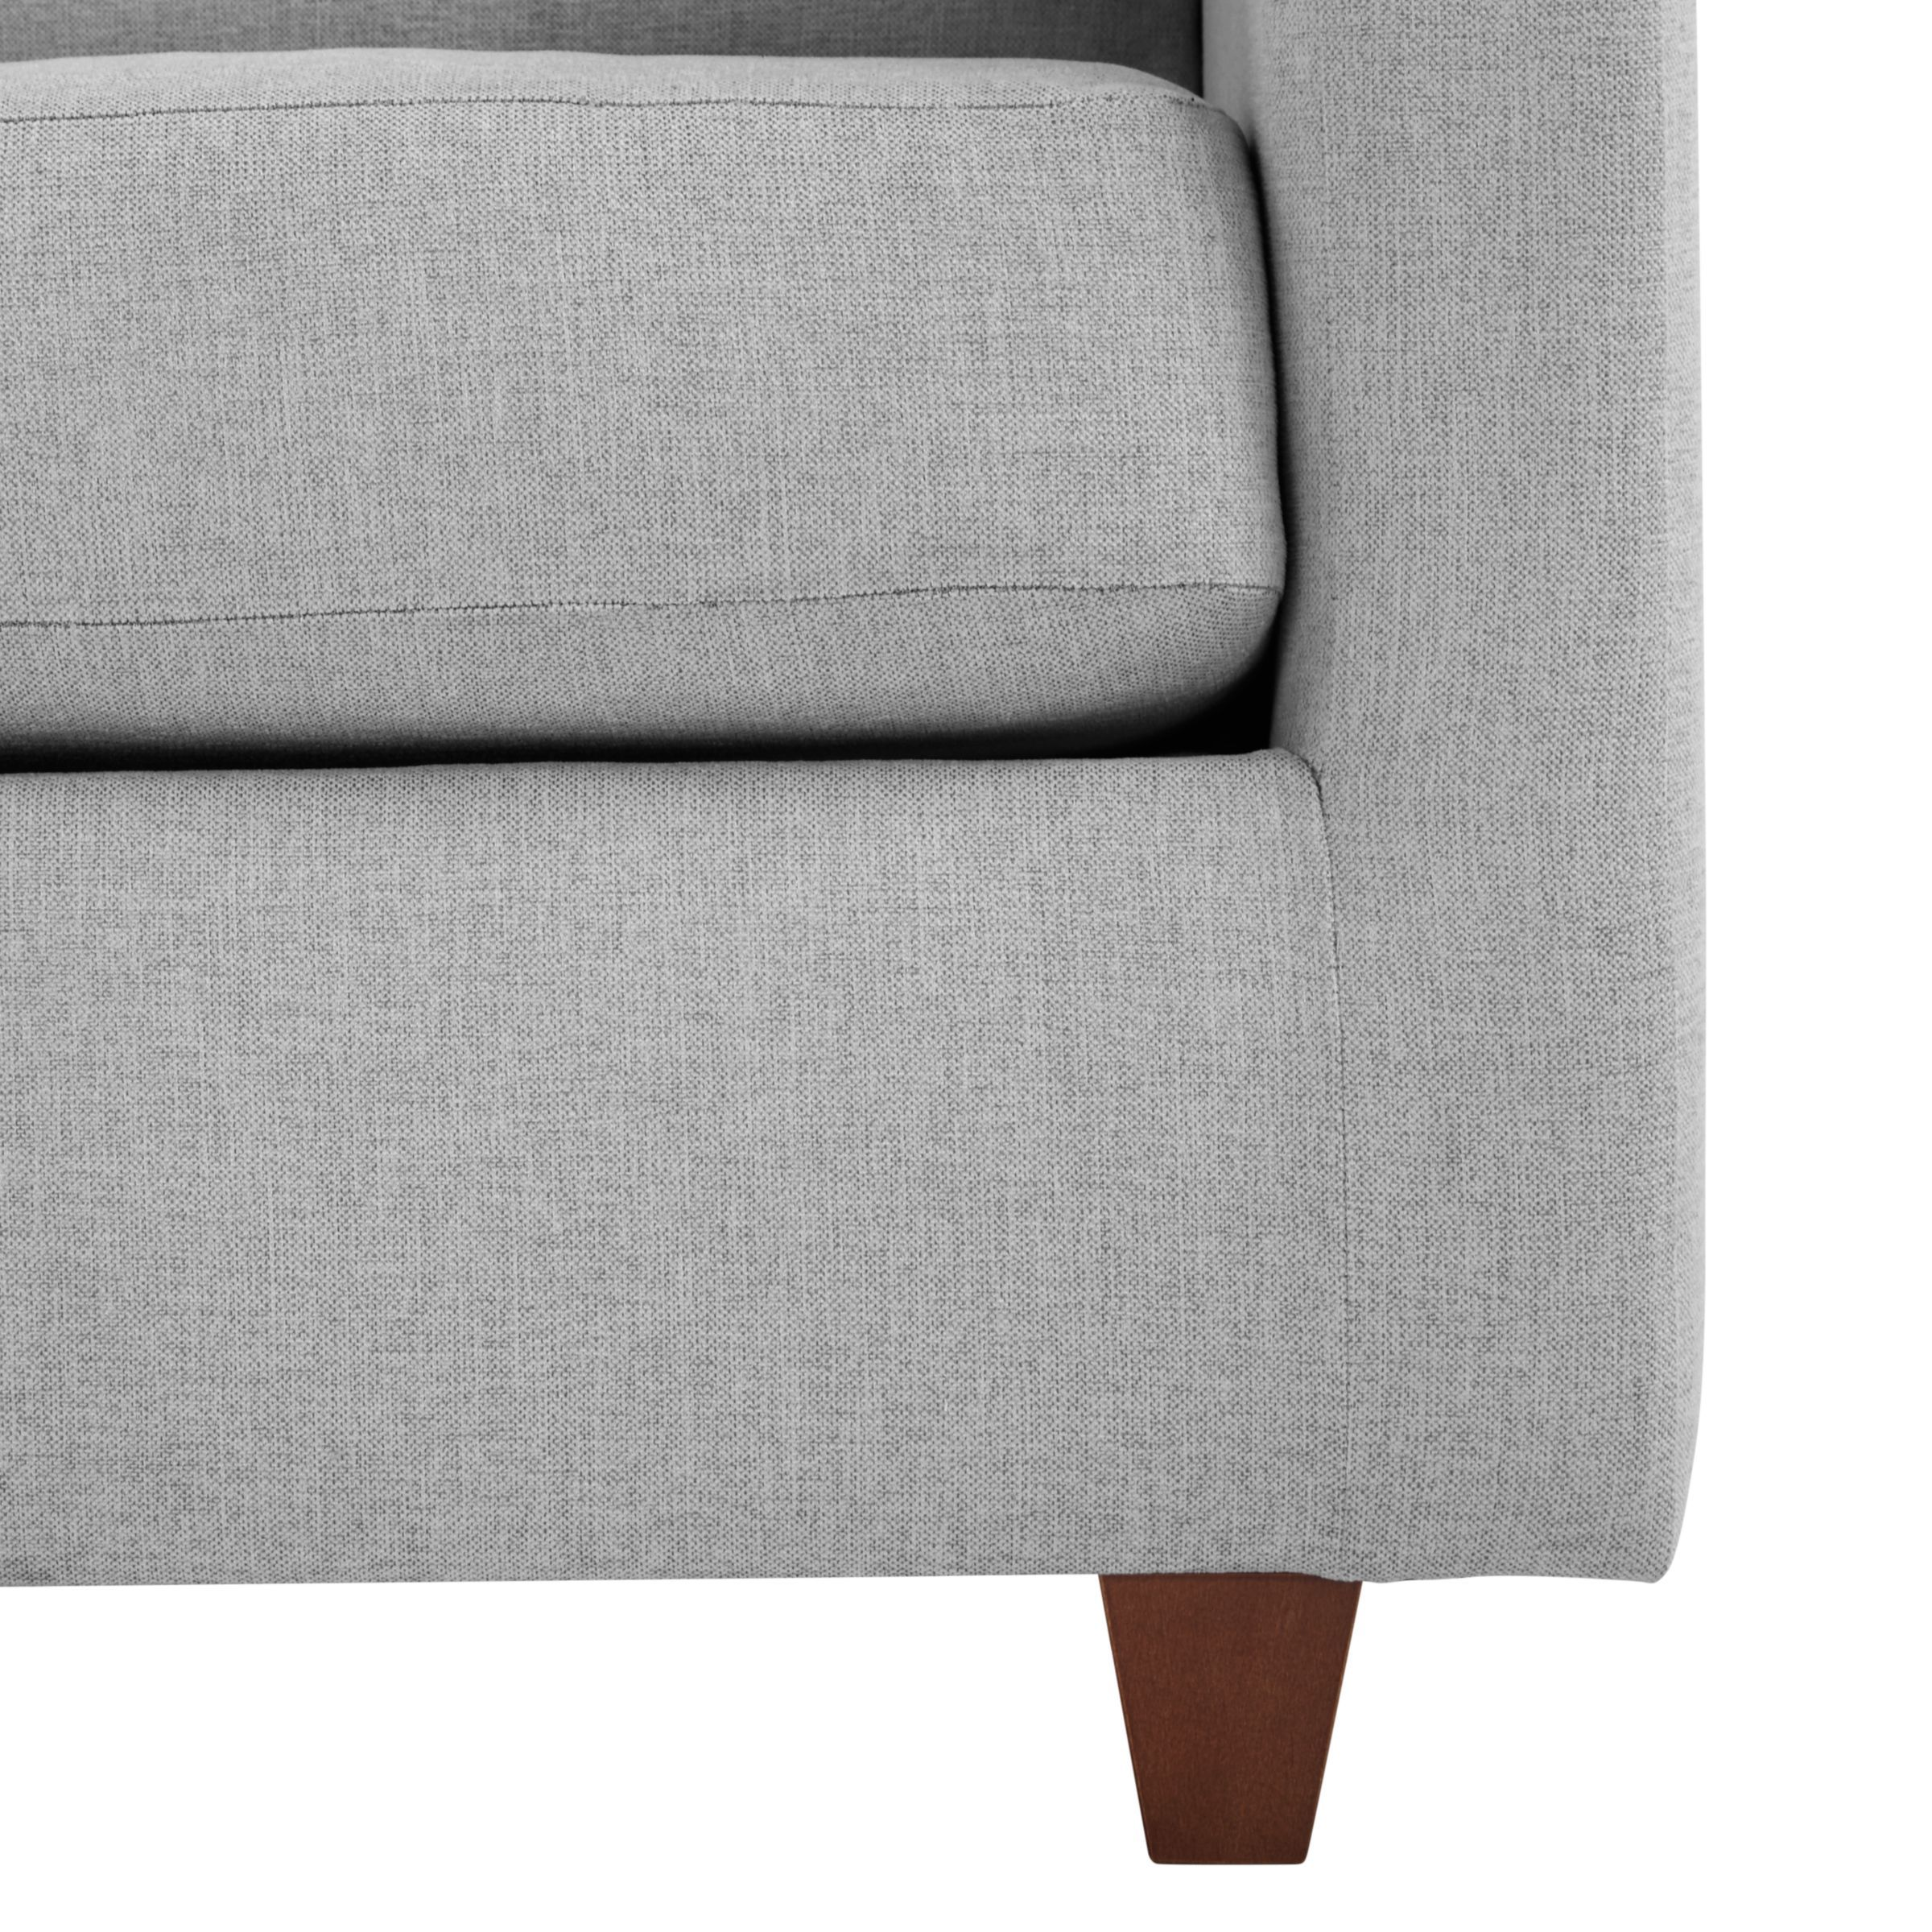 John Lewis Partners Barlow Snuggler Sofa Bed With Pocket Sprung